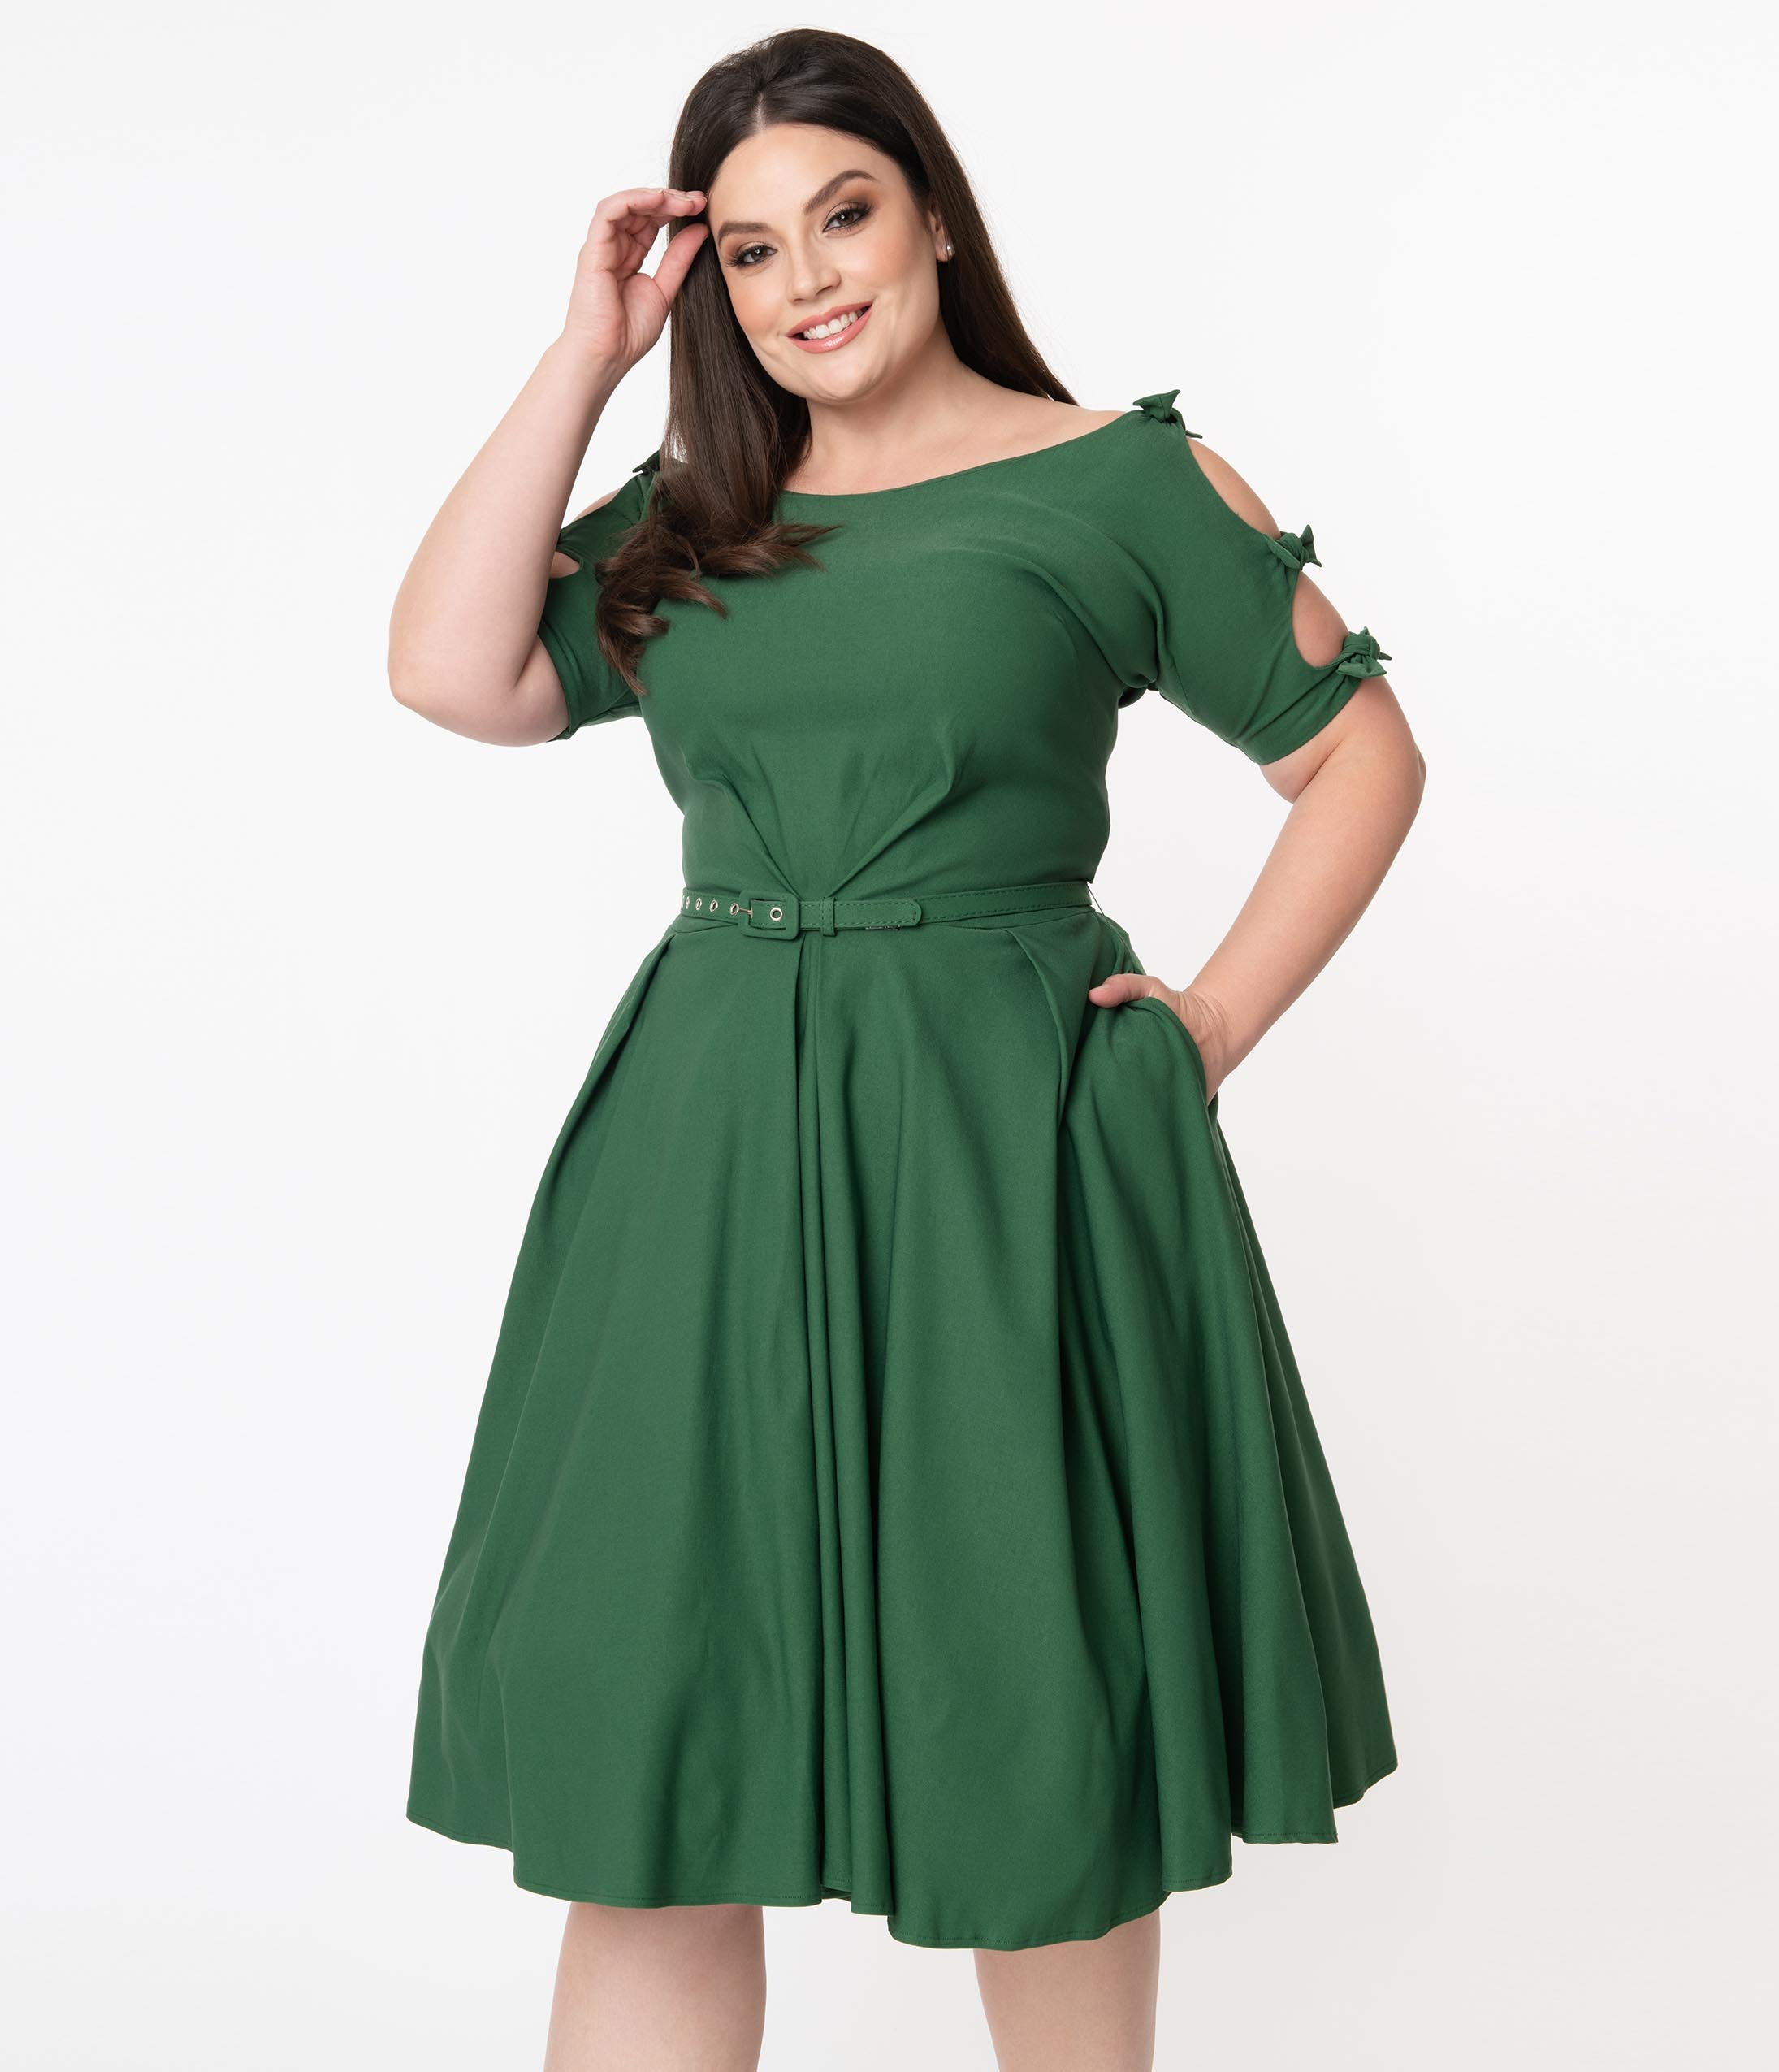 1950s Plus Size Dresses, Swing Dresses Unique Vintage Plus Size 1950S Green Selma Swing Dress $88.00 AT vintagedancer.com